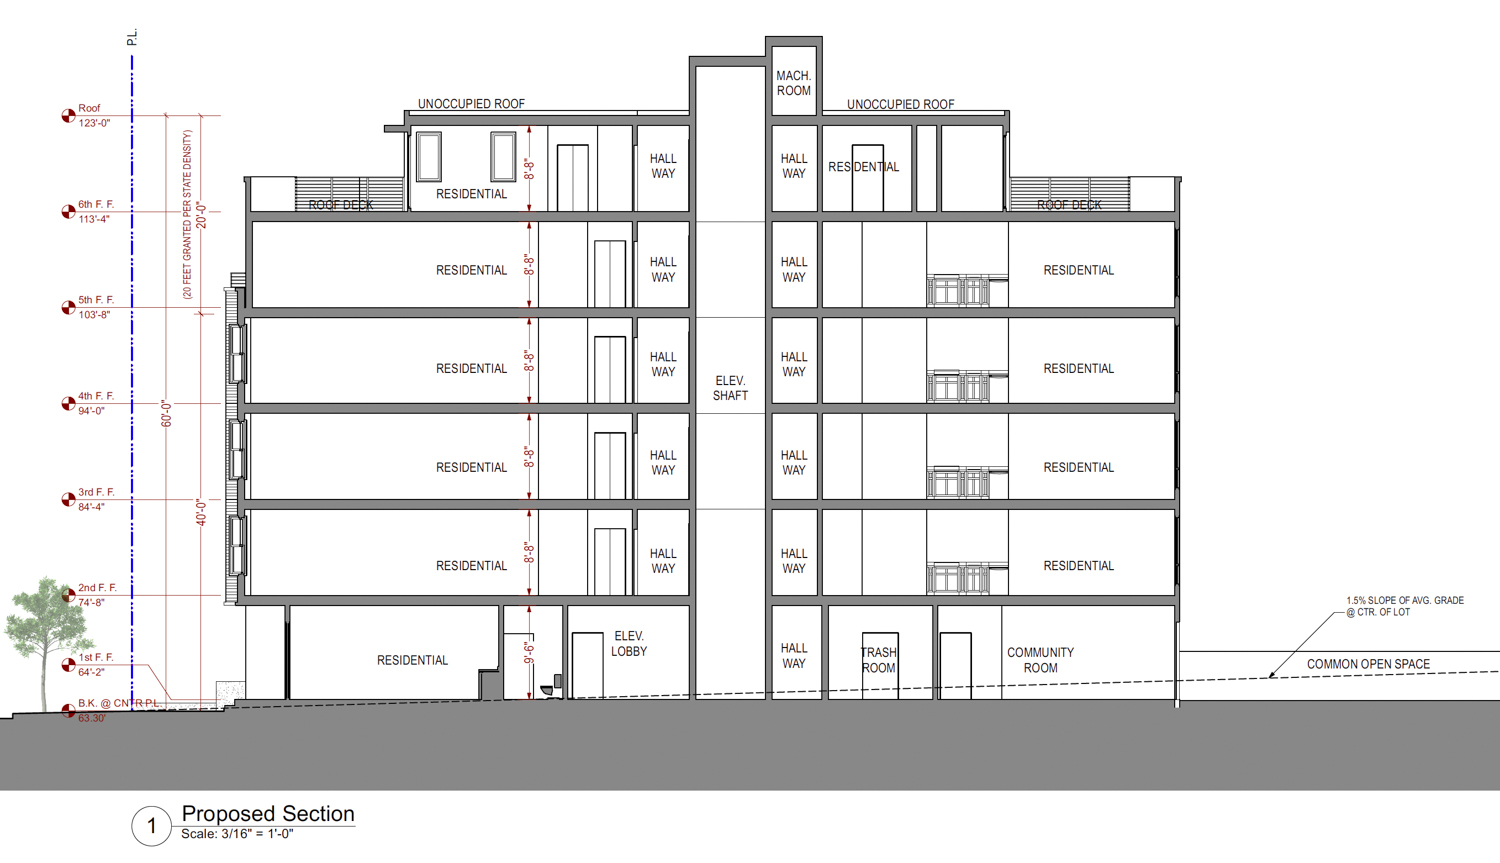 3832 18th Street cross section, elevation by SIA Consulting